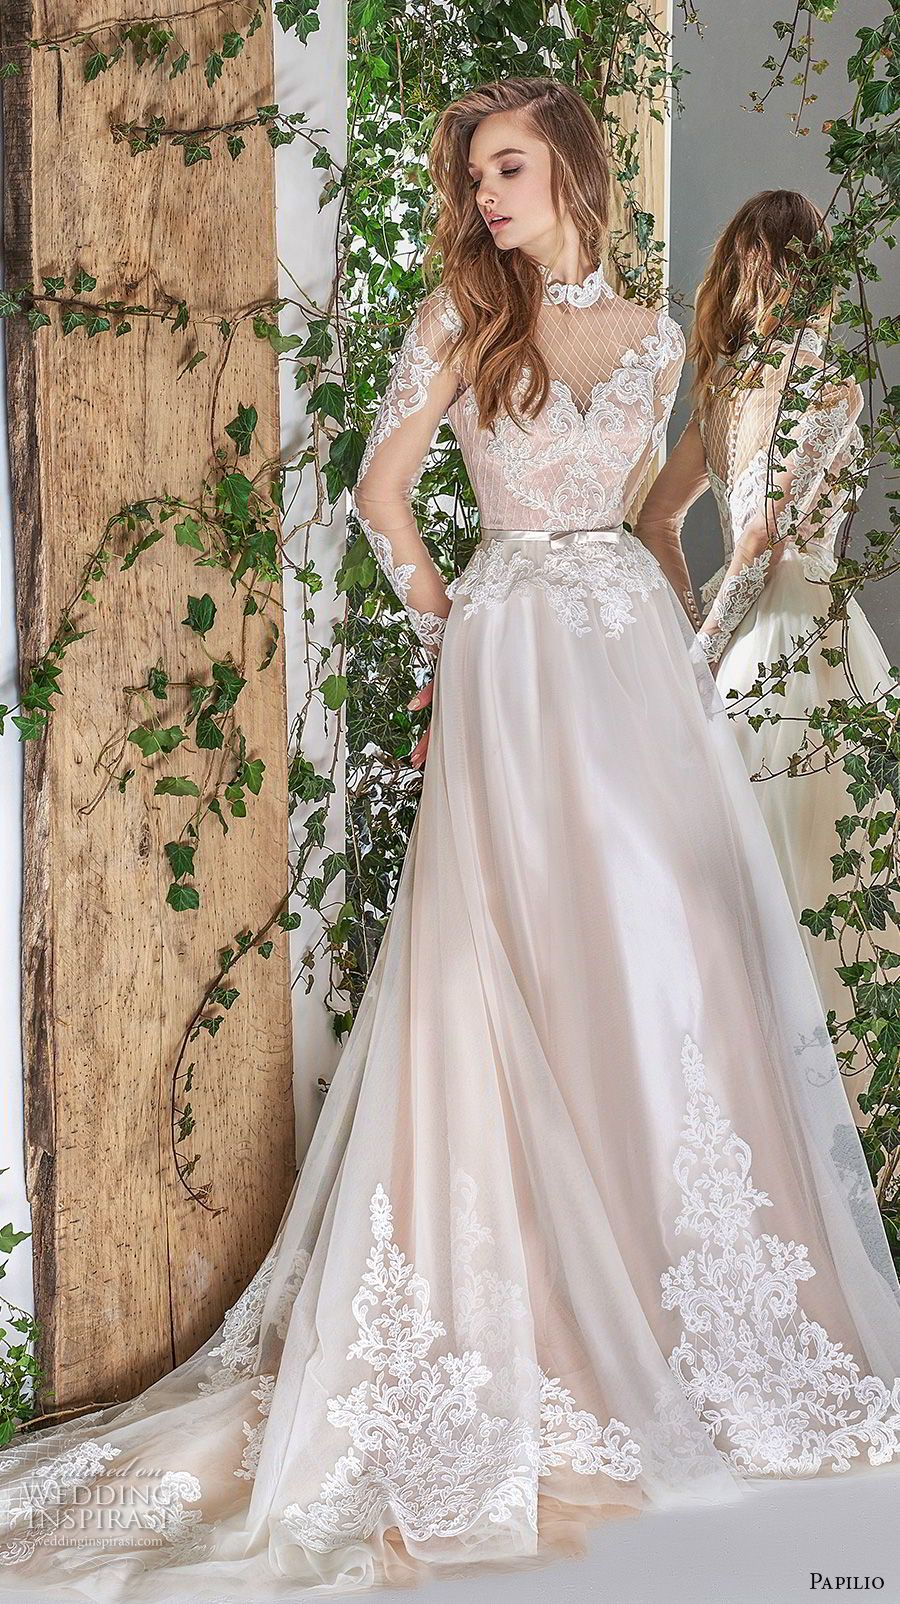 Wedding dress without train  Papilio  Wedding Dresses u ucWonderlandud Bridal Collection